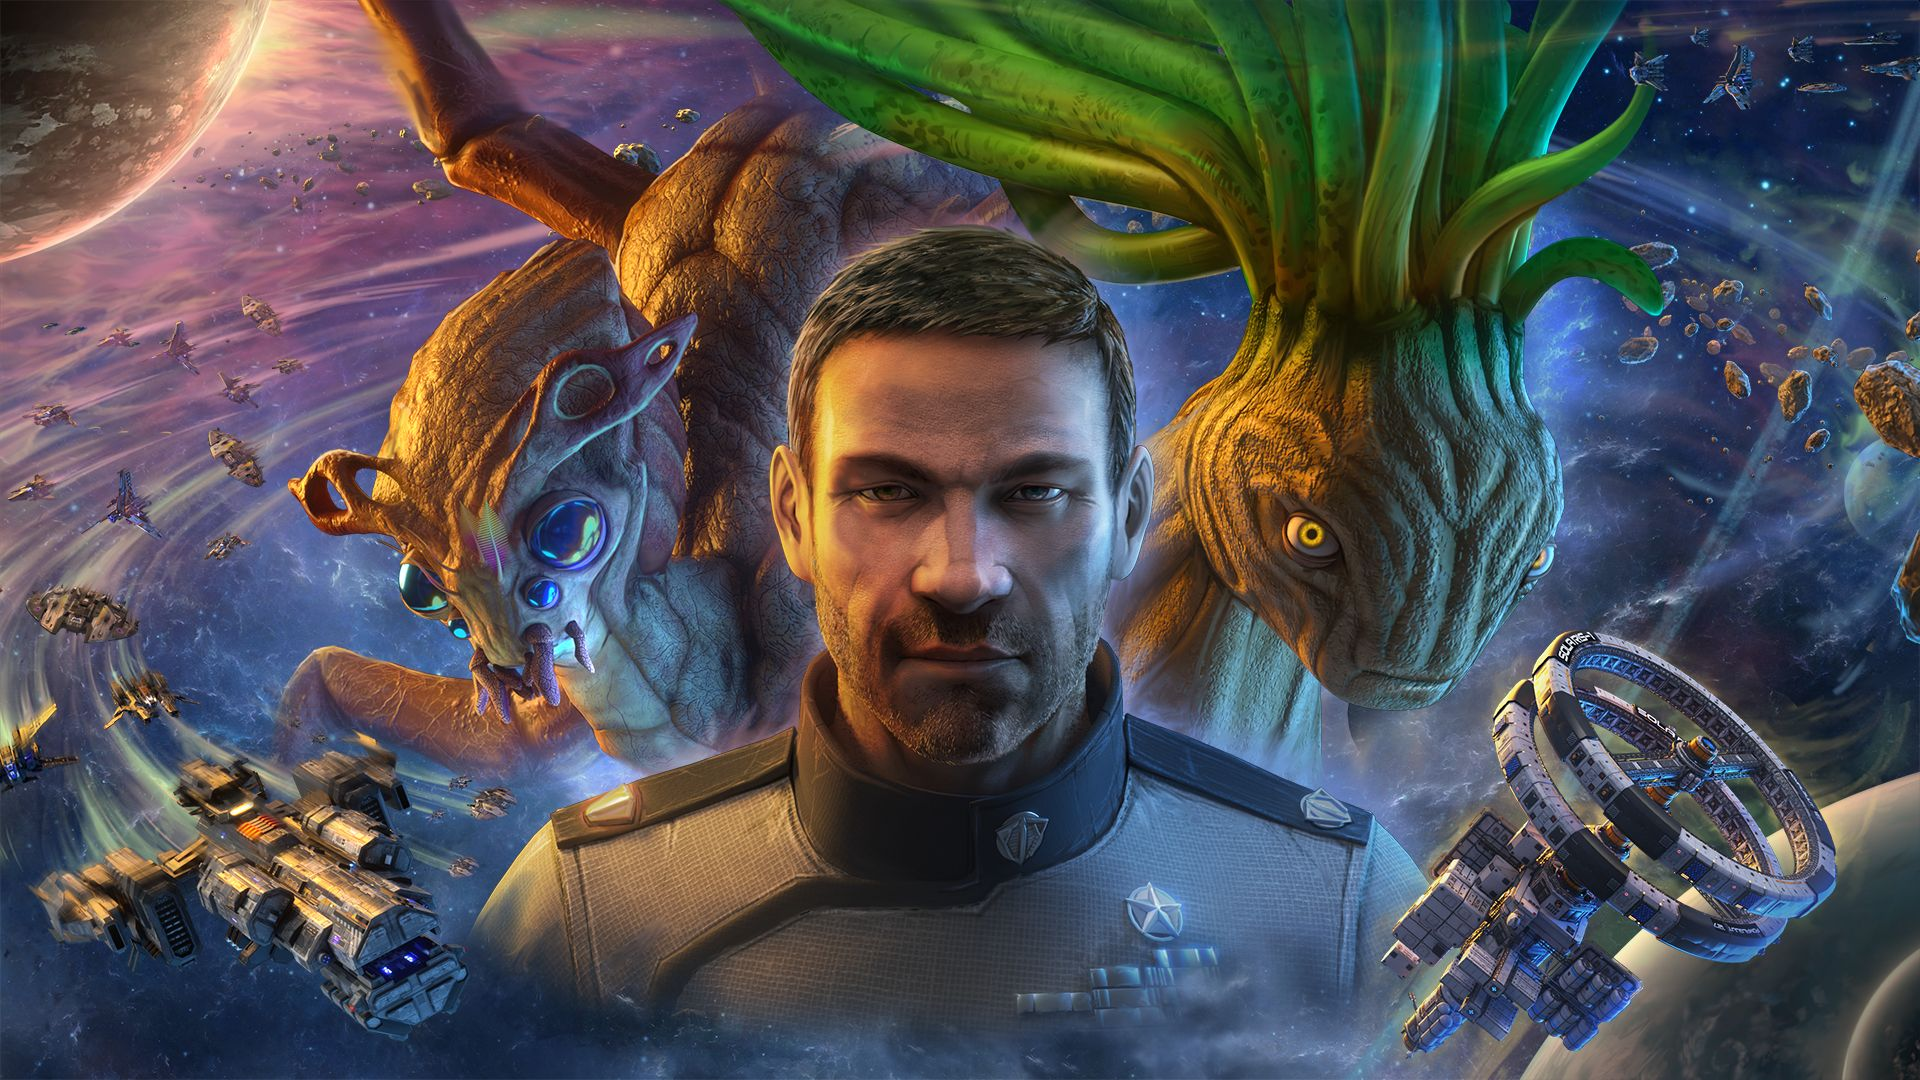 Five reasons to be excited for space 4X game Galactic Civilizations IV